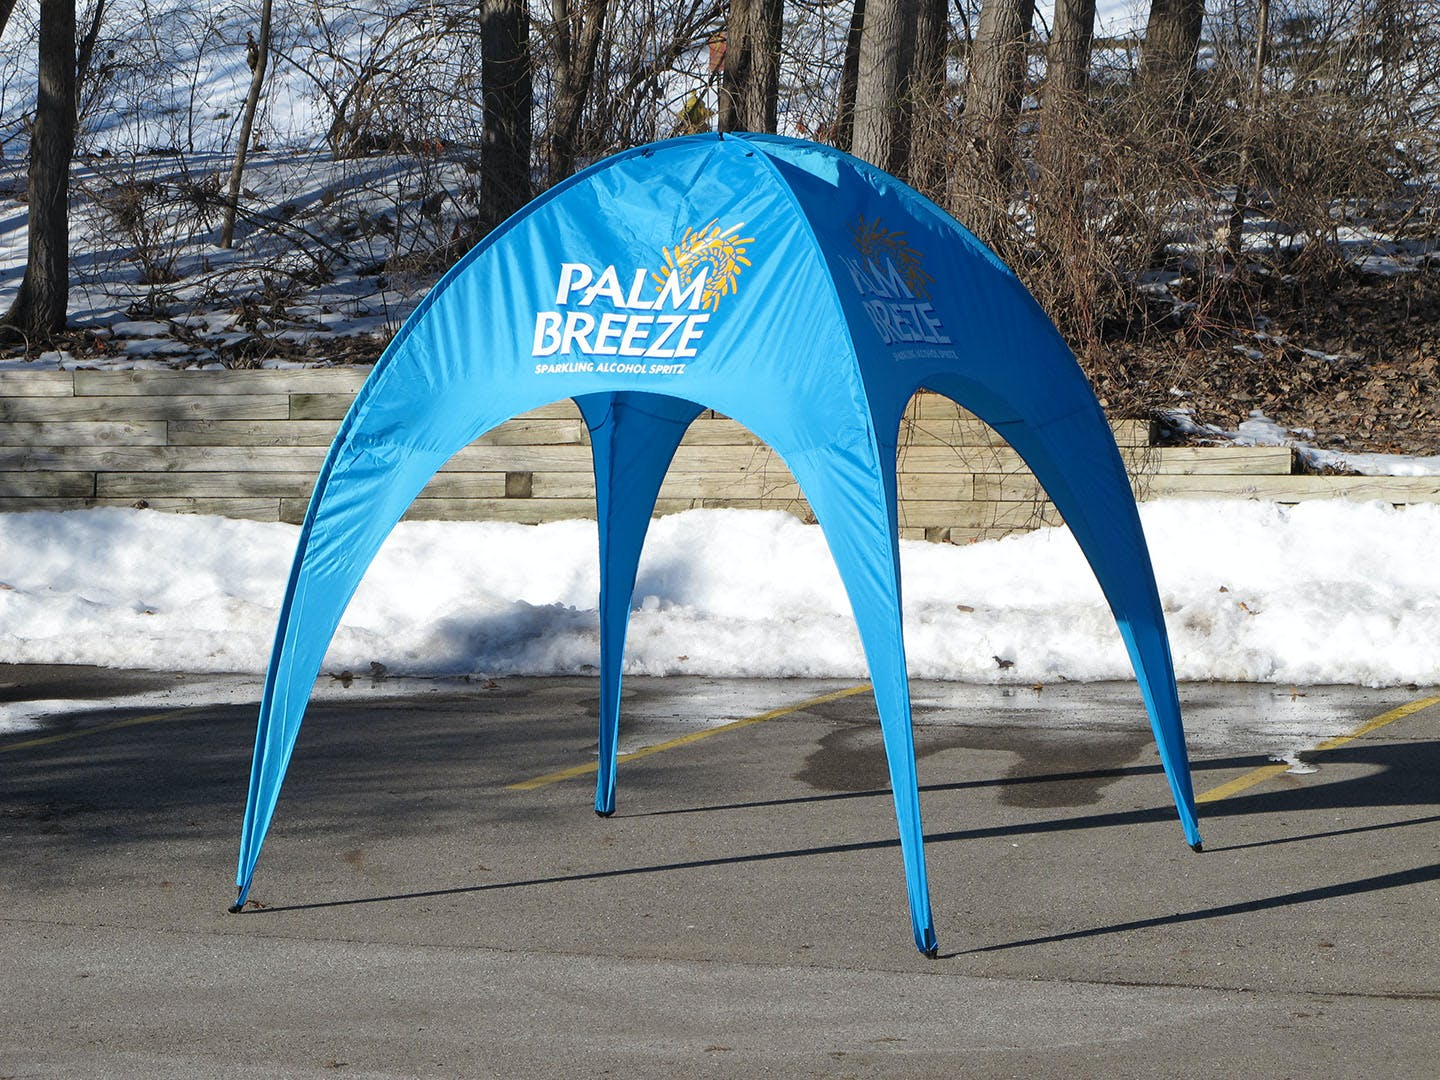 Tents Promotional product sold by Alvimar Global